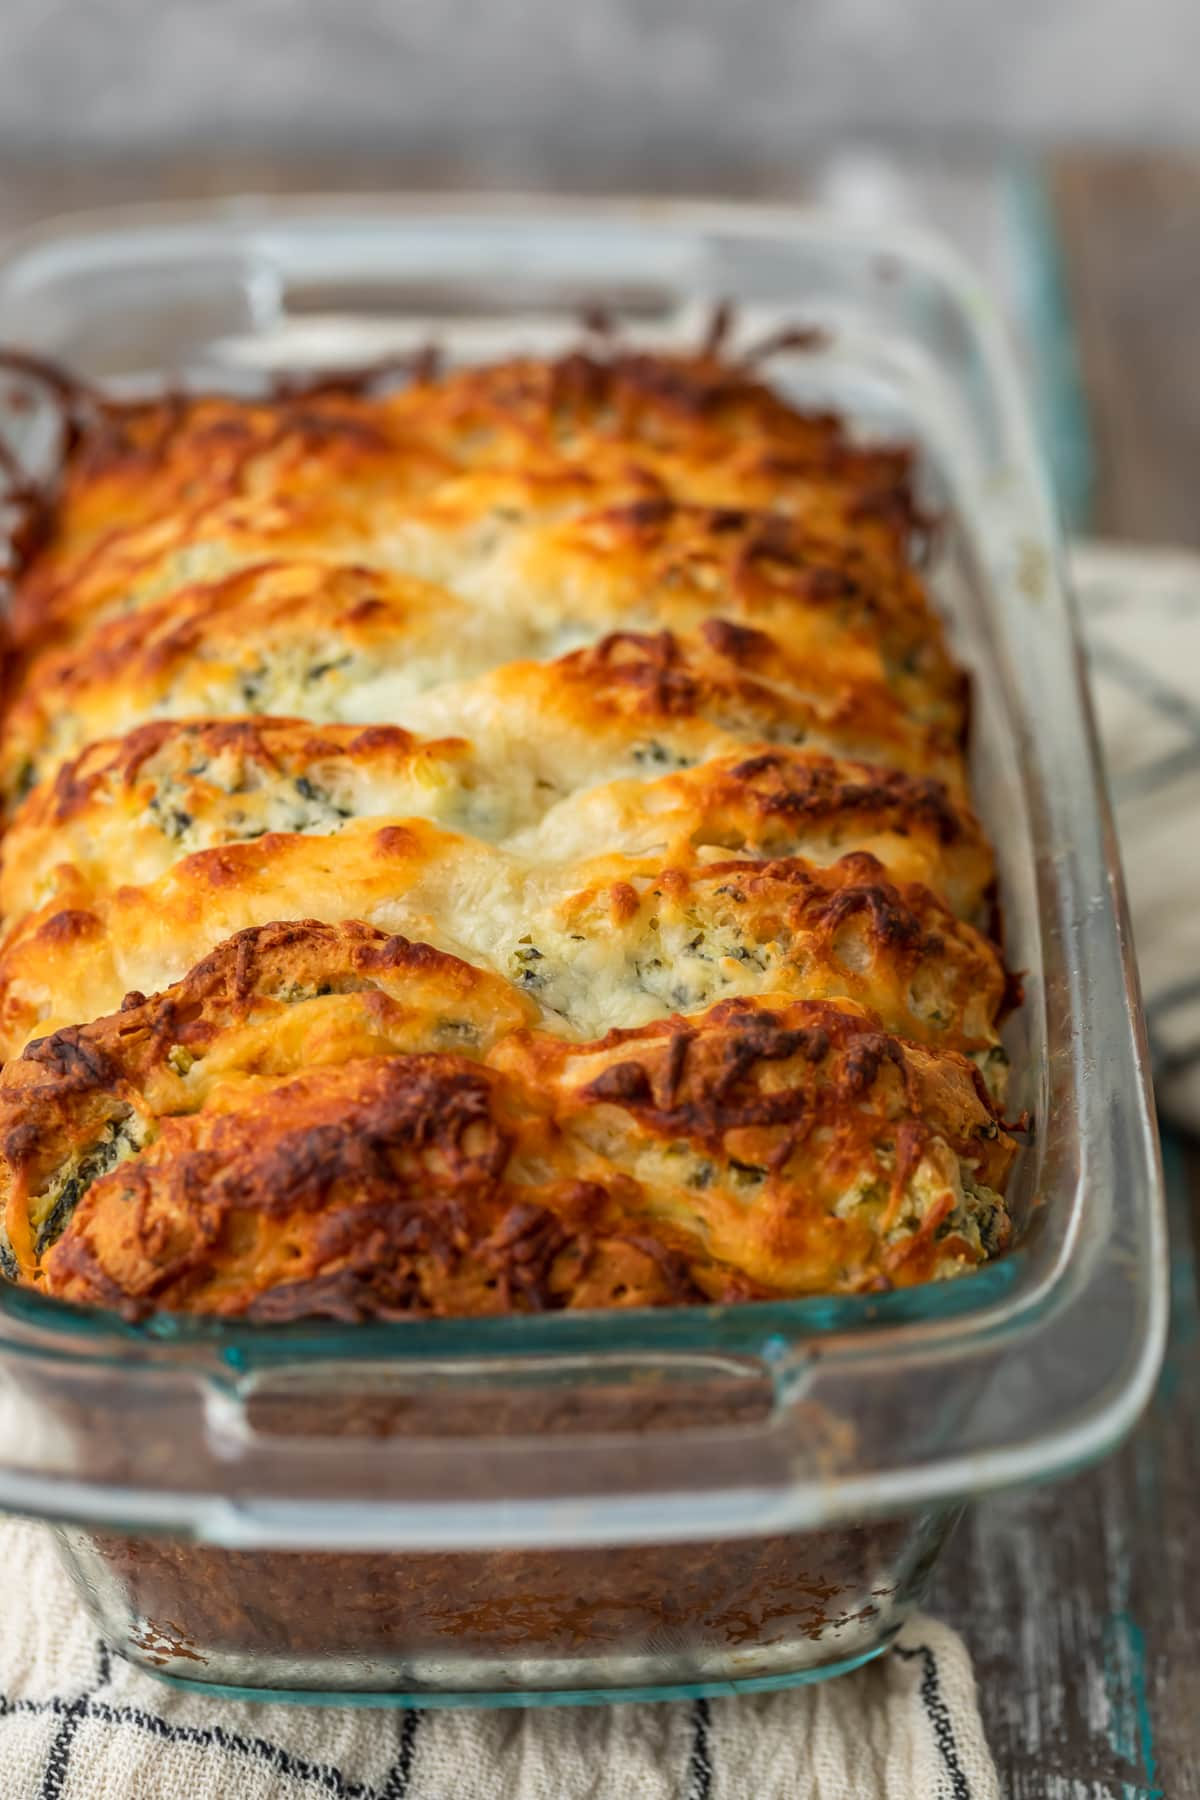 loaf of pull apart bread in a bread pan, topped with cheese and parsley butter